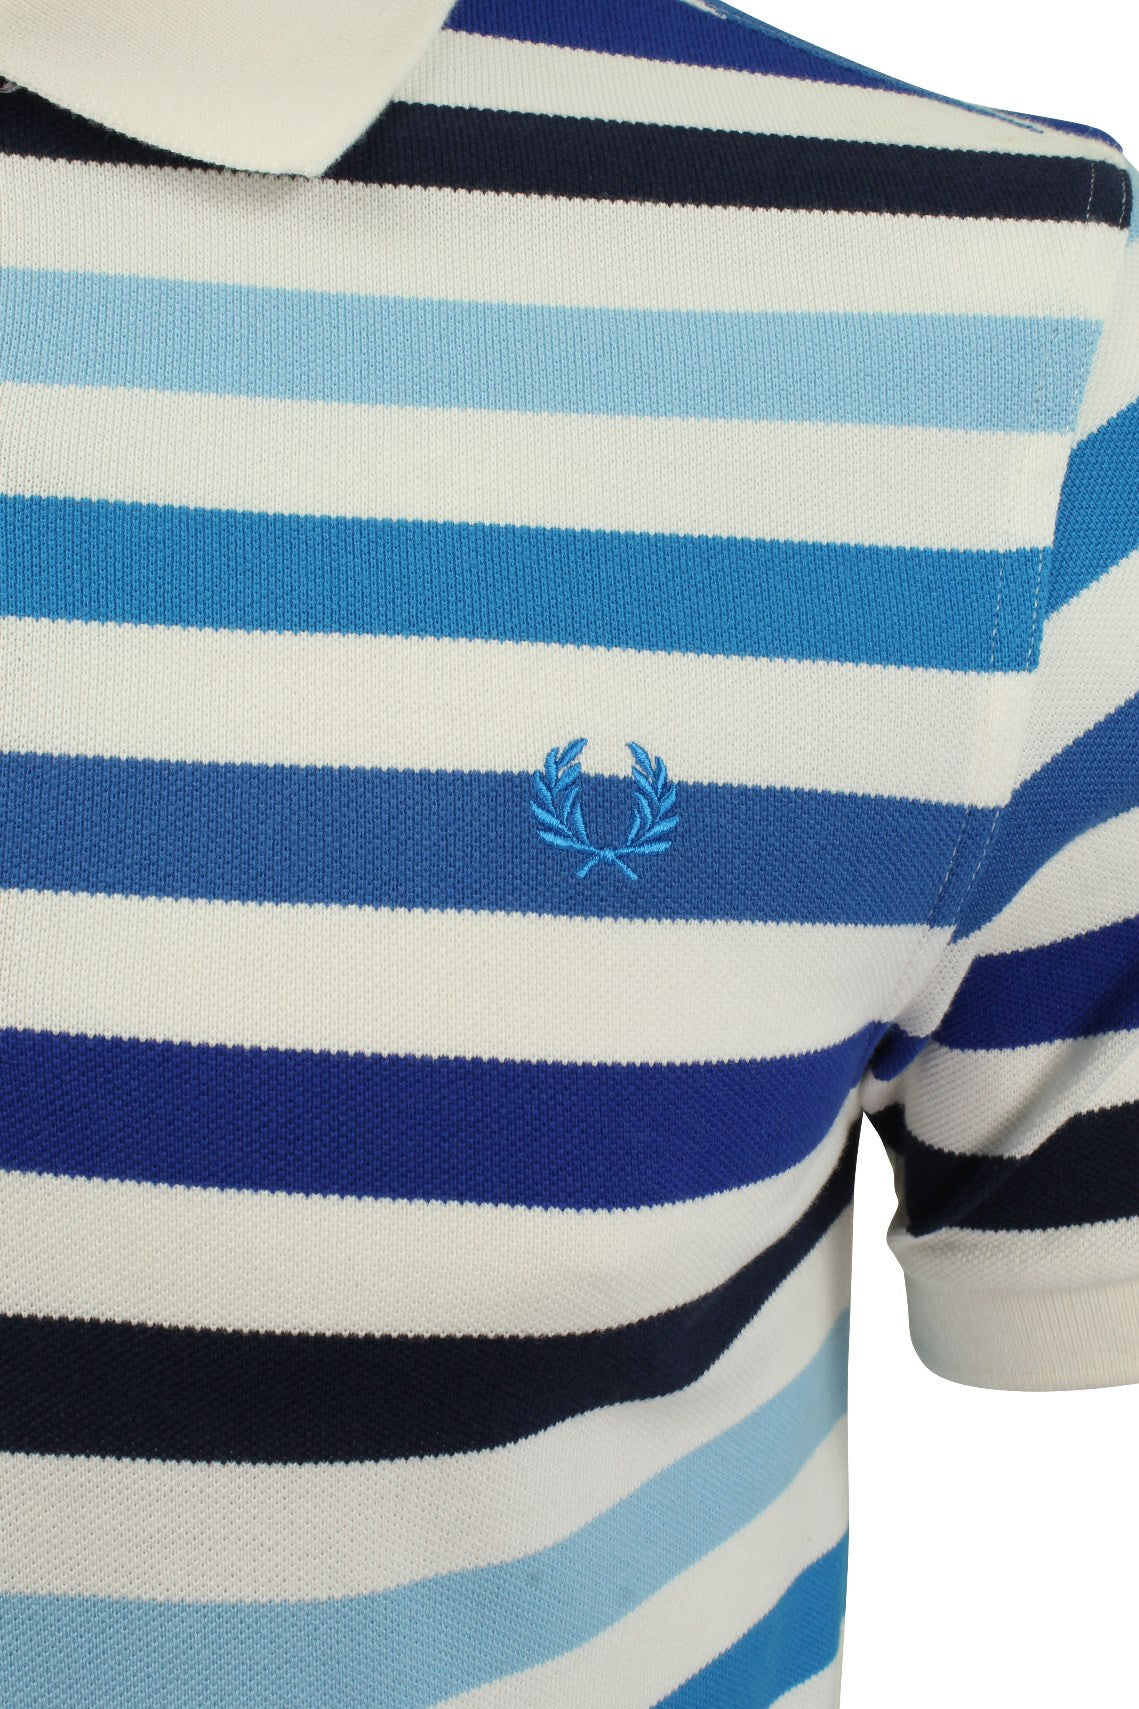 Fred Perry Multi Stripe Polo T-Shirt S/S White/Blue_..S-2